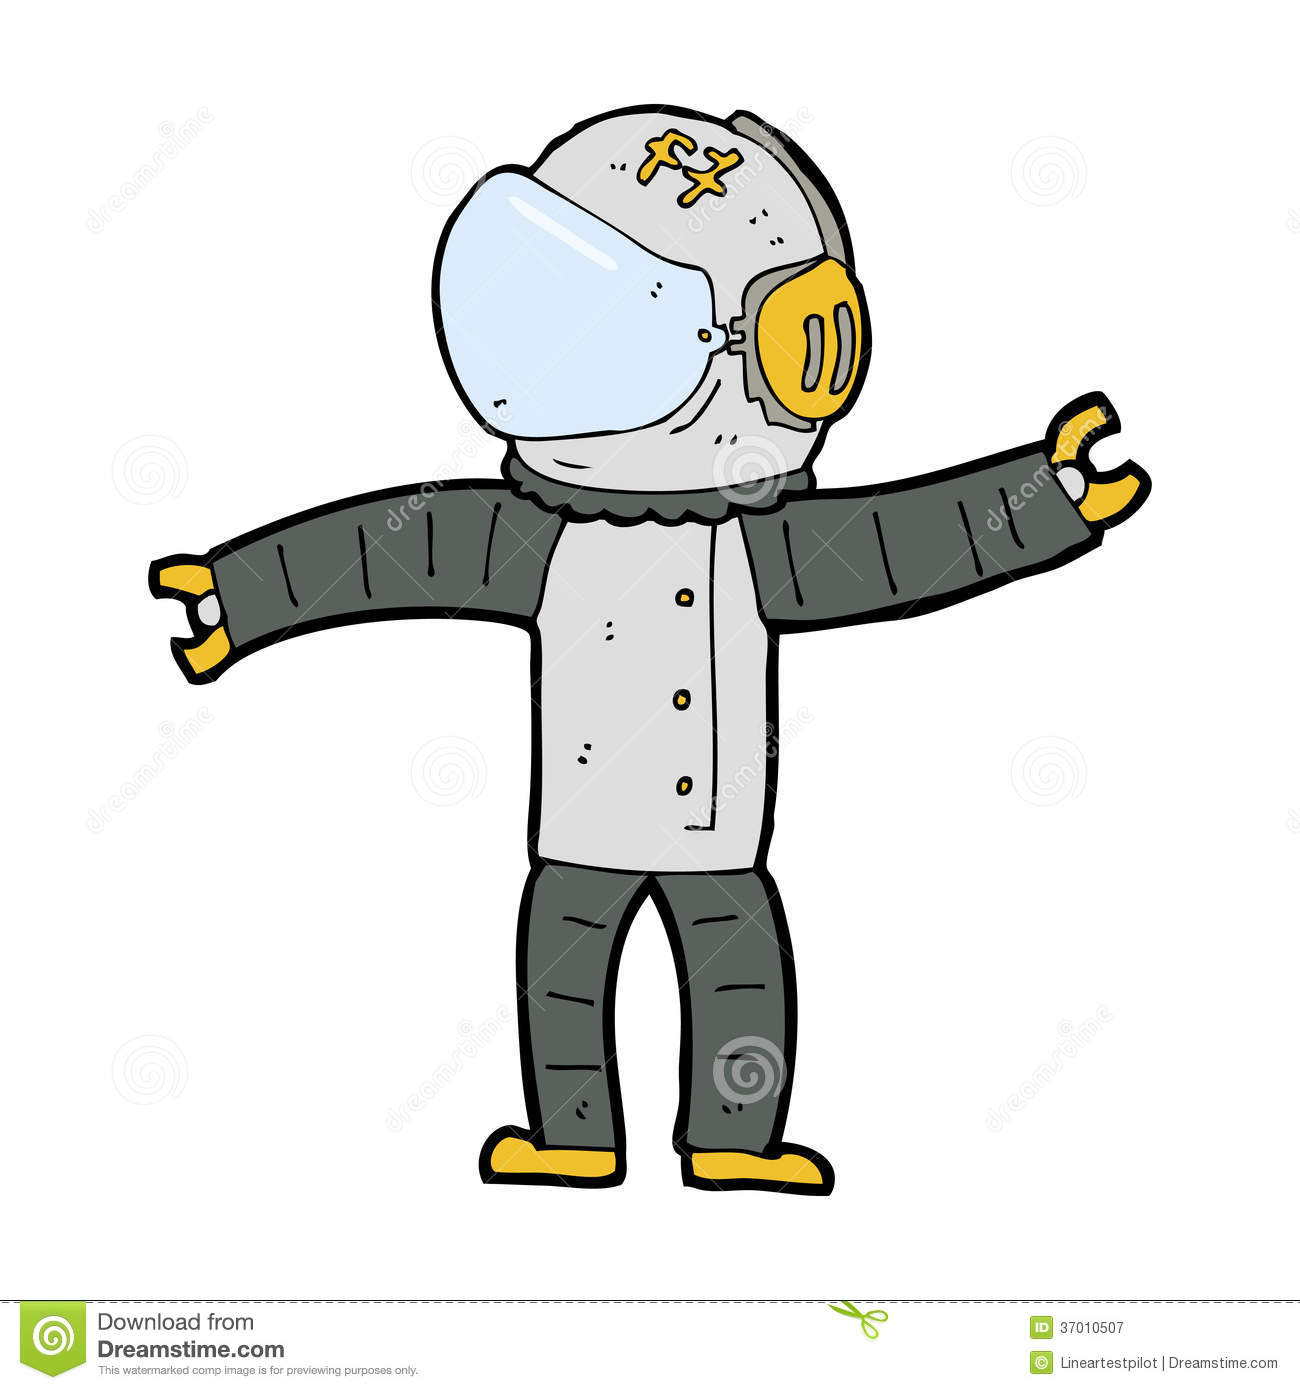 Cartoon Astronaut Royalty Free Stock Photography - Image: 37010507